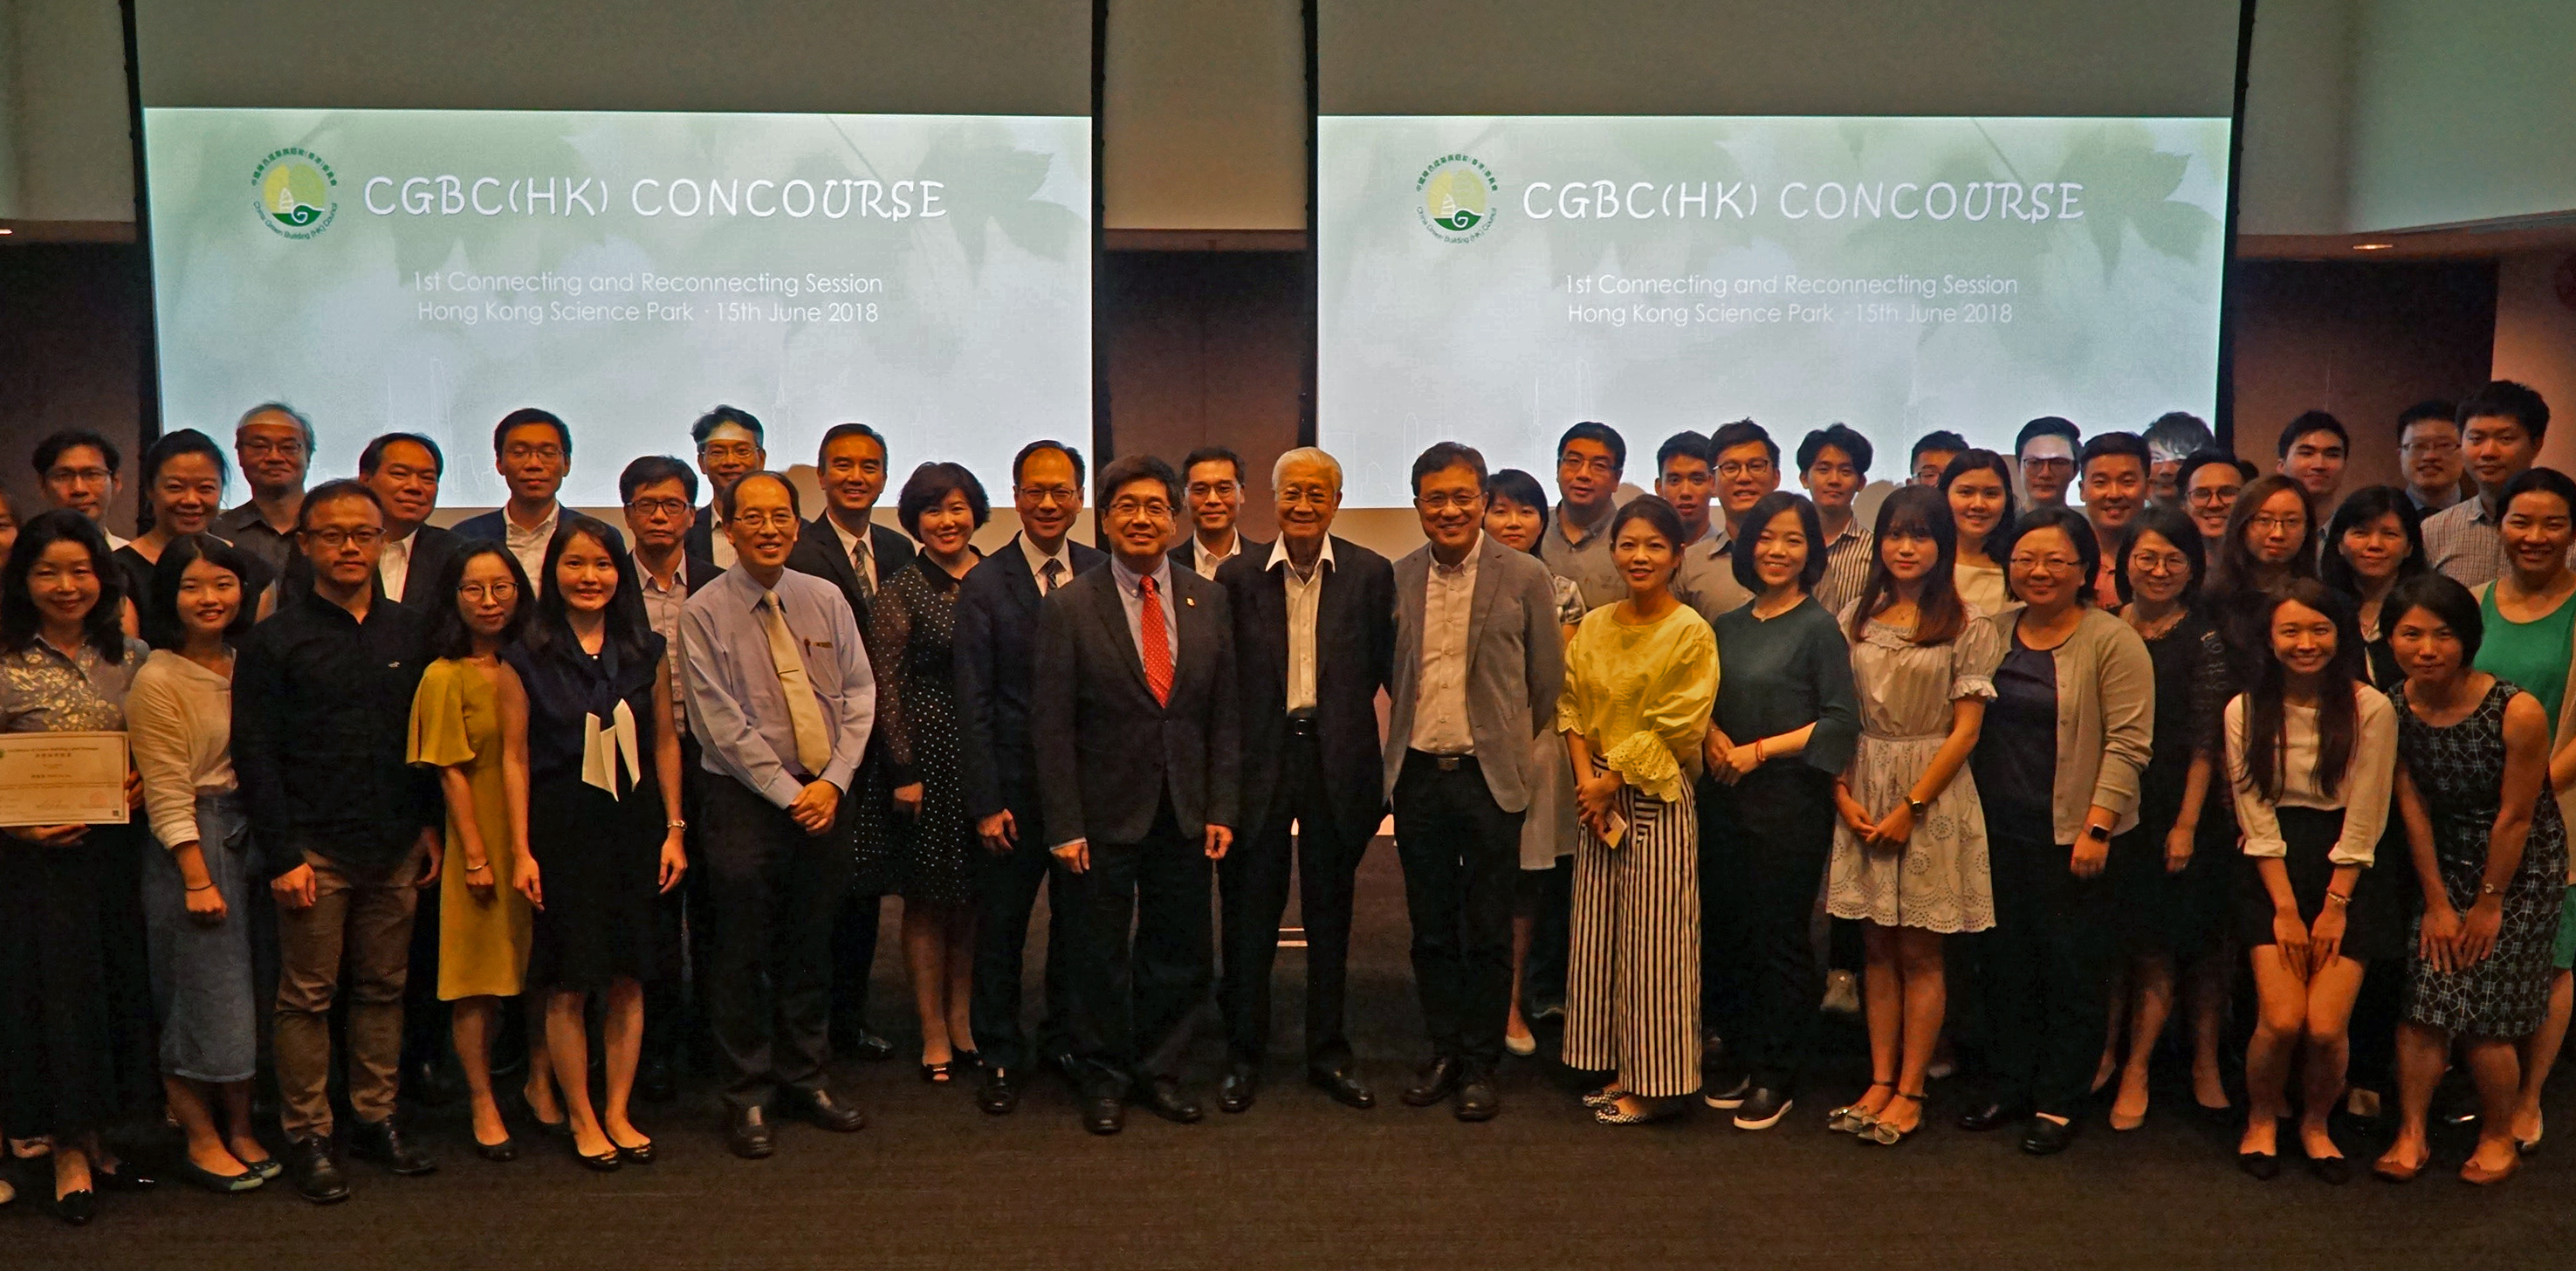 CGBC(HK) CONCOURSE - 1st Gathering for Connecting and Reconnecting, 15 Jun 2018